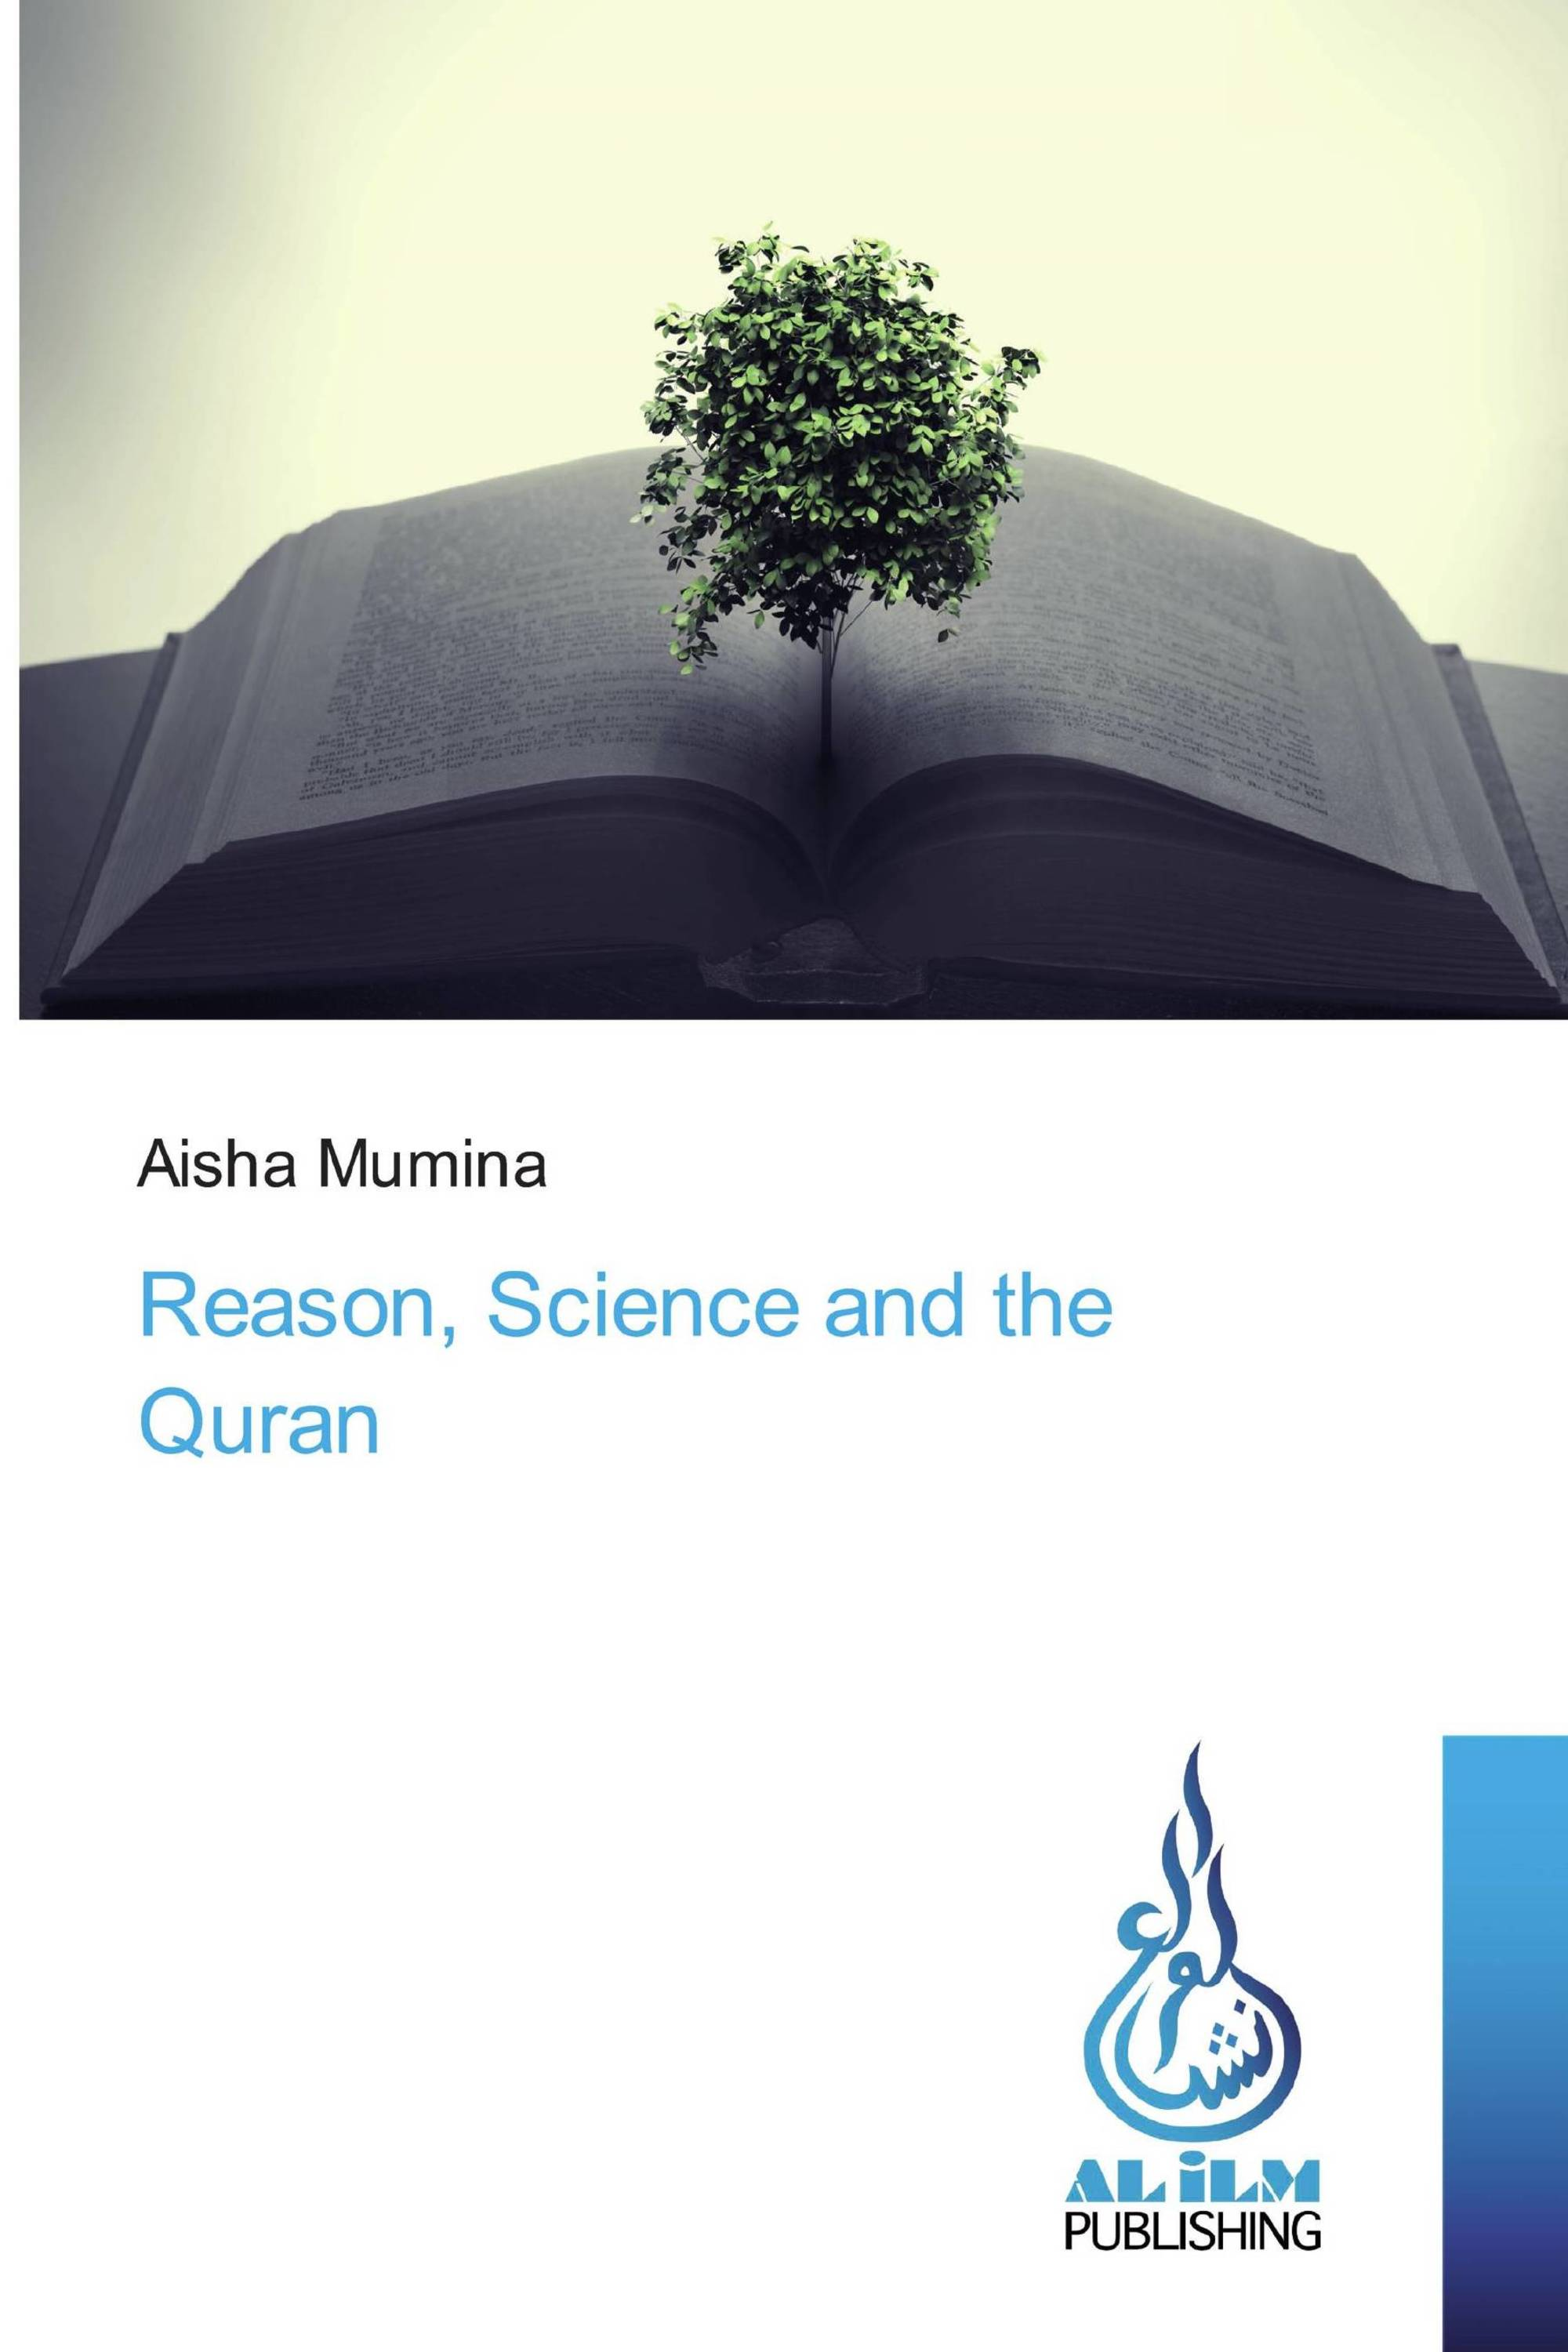 Reason, Science and the Quran